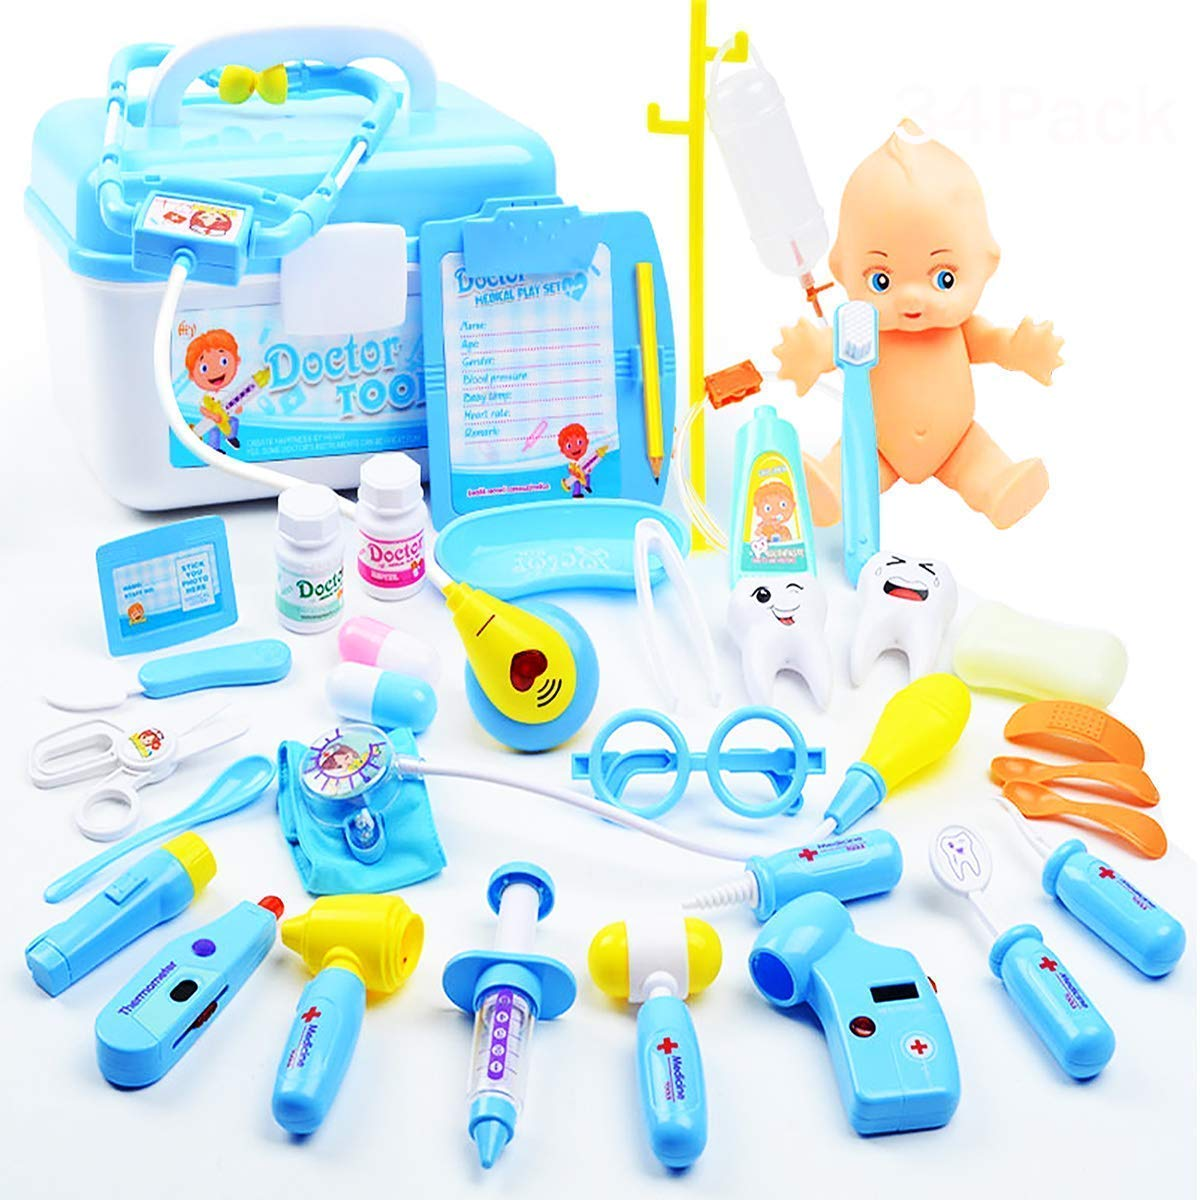 Kids Doctor Set   34 Pieces Role Play Nurse Medical Box Kit with Electronic Stethoscope \u0026 Toys for Boys\u0027 3-6 Years